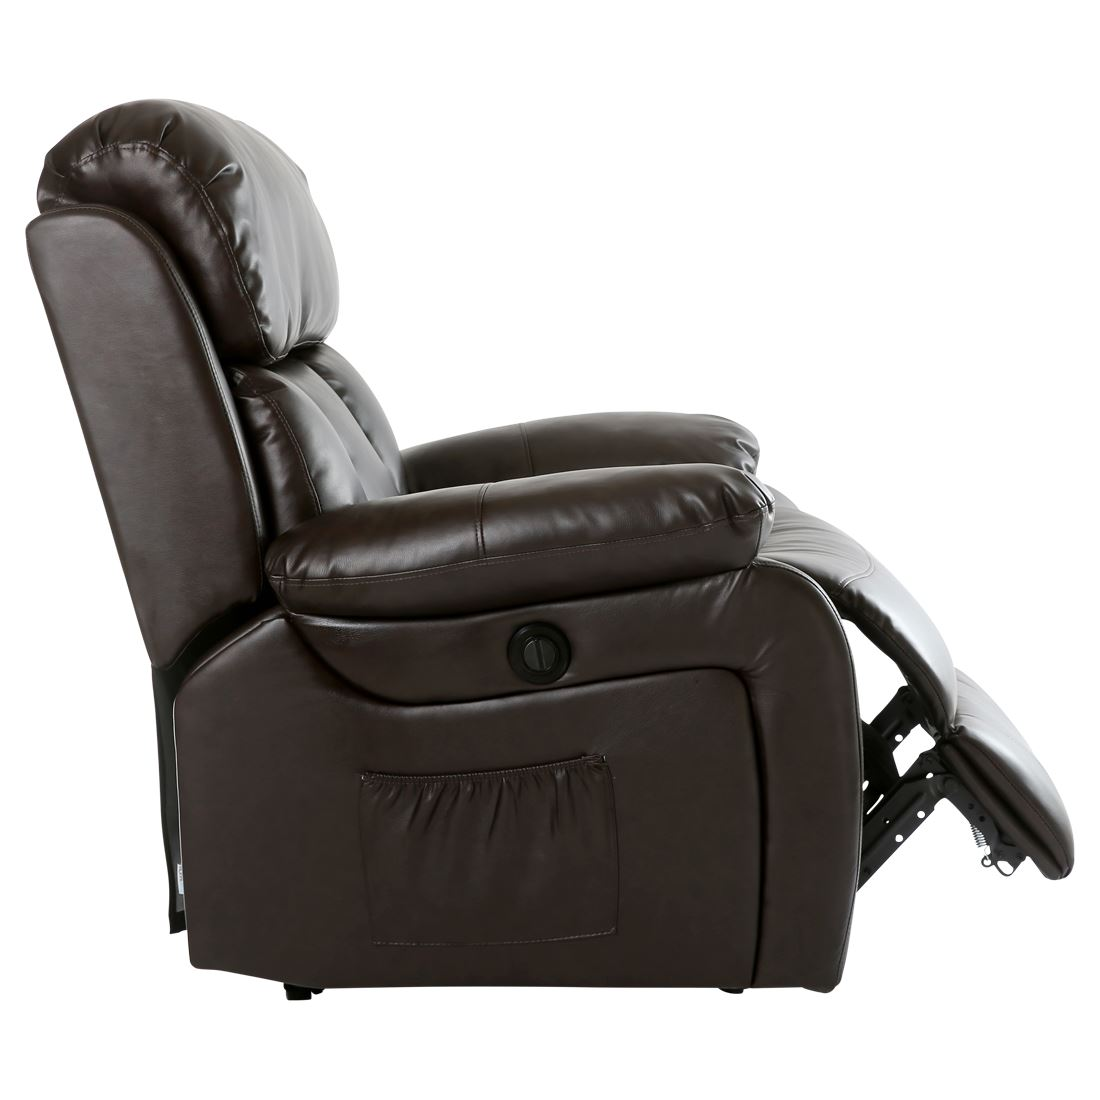 CHESTER ELECTRIC HEATED LEATHER MASSAGE RECLINER CHAIR SOFA GAMING HOME ARMCH